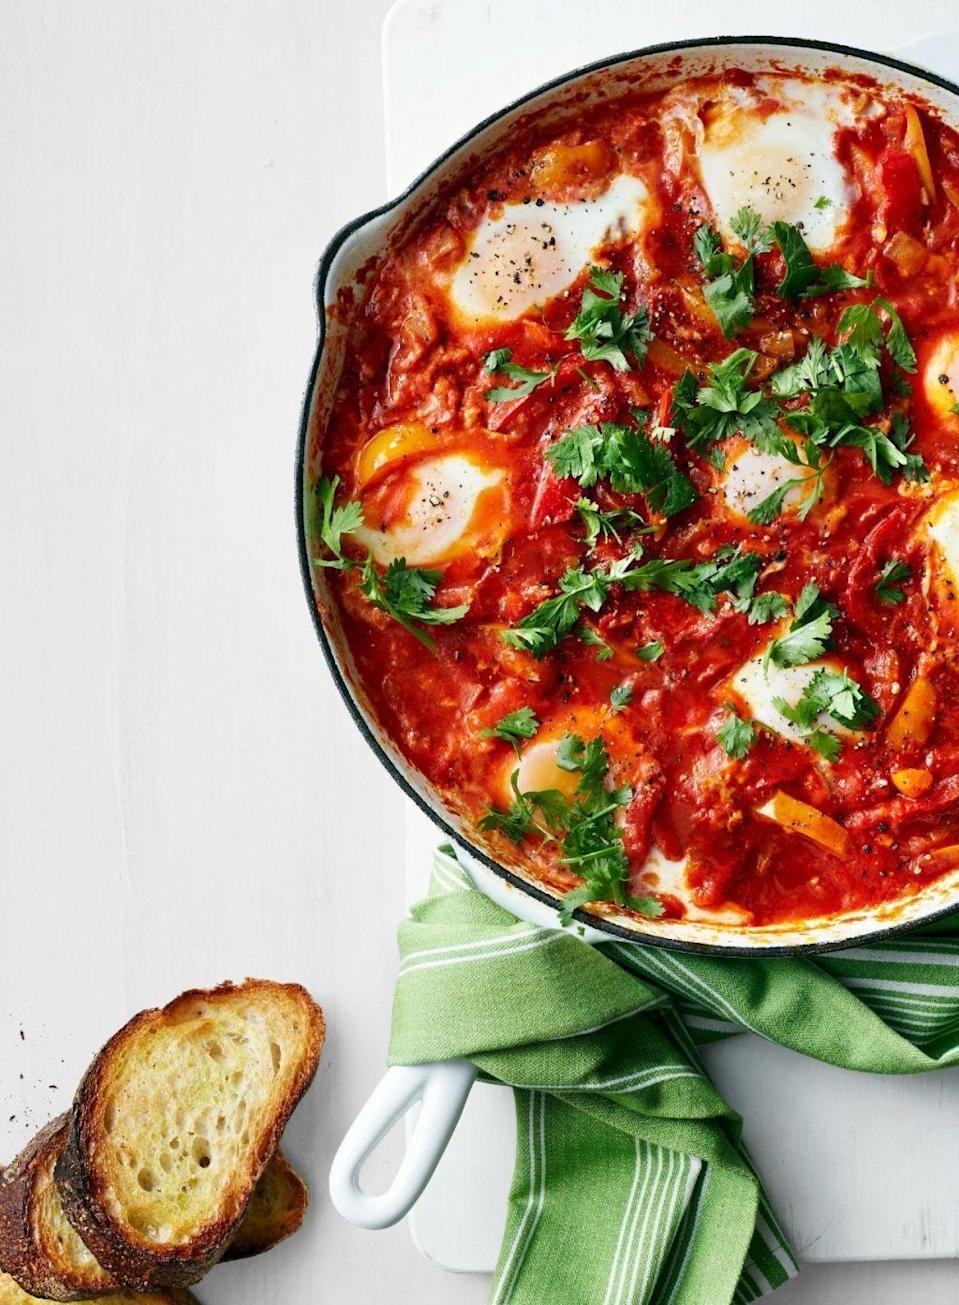 "<p>Kids will love getting to dip their toast into this delicious and zesty stew.</p><p><em><a href=""https://www.womansday.com/food-recipes/food-drinks/recipes/a51825/stewed-peppers-and-tomatoes-with-eggs/"" rel=""nofollow noopener"" target=""_blank"" data-ylk=""slk:Get the Stewed Peppers and Tomatoes with Eggs recipe."" class=""link rapid-noclick-resp"">Get the Stewed Peppers and Tomatoes with Eggs recipe.</a></em></p>"